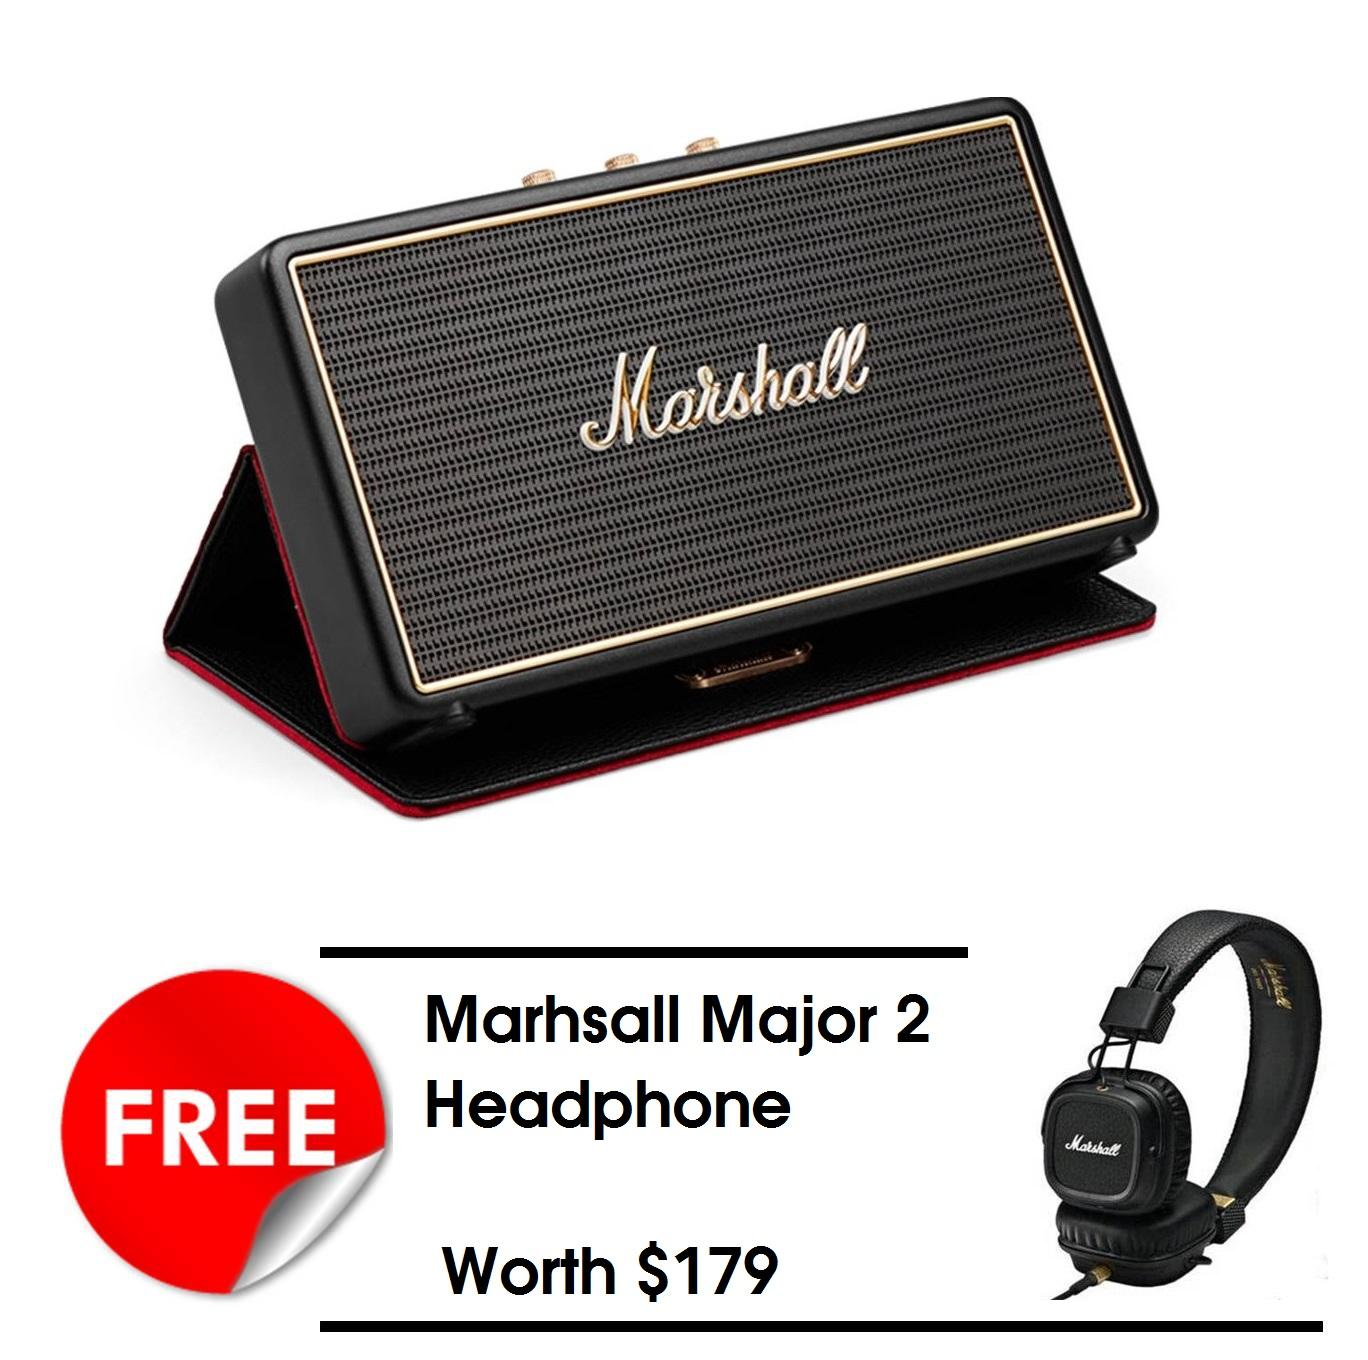 Cheapest Marshall Portable Bluetooth Speaker Stockwell With Flipcover Black Free Marshall Major 2 Headphone